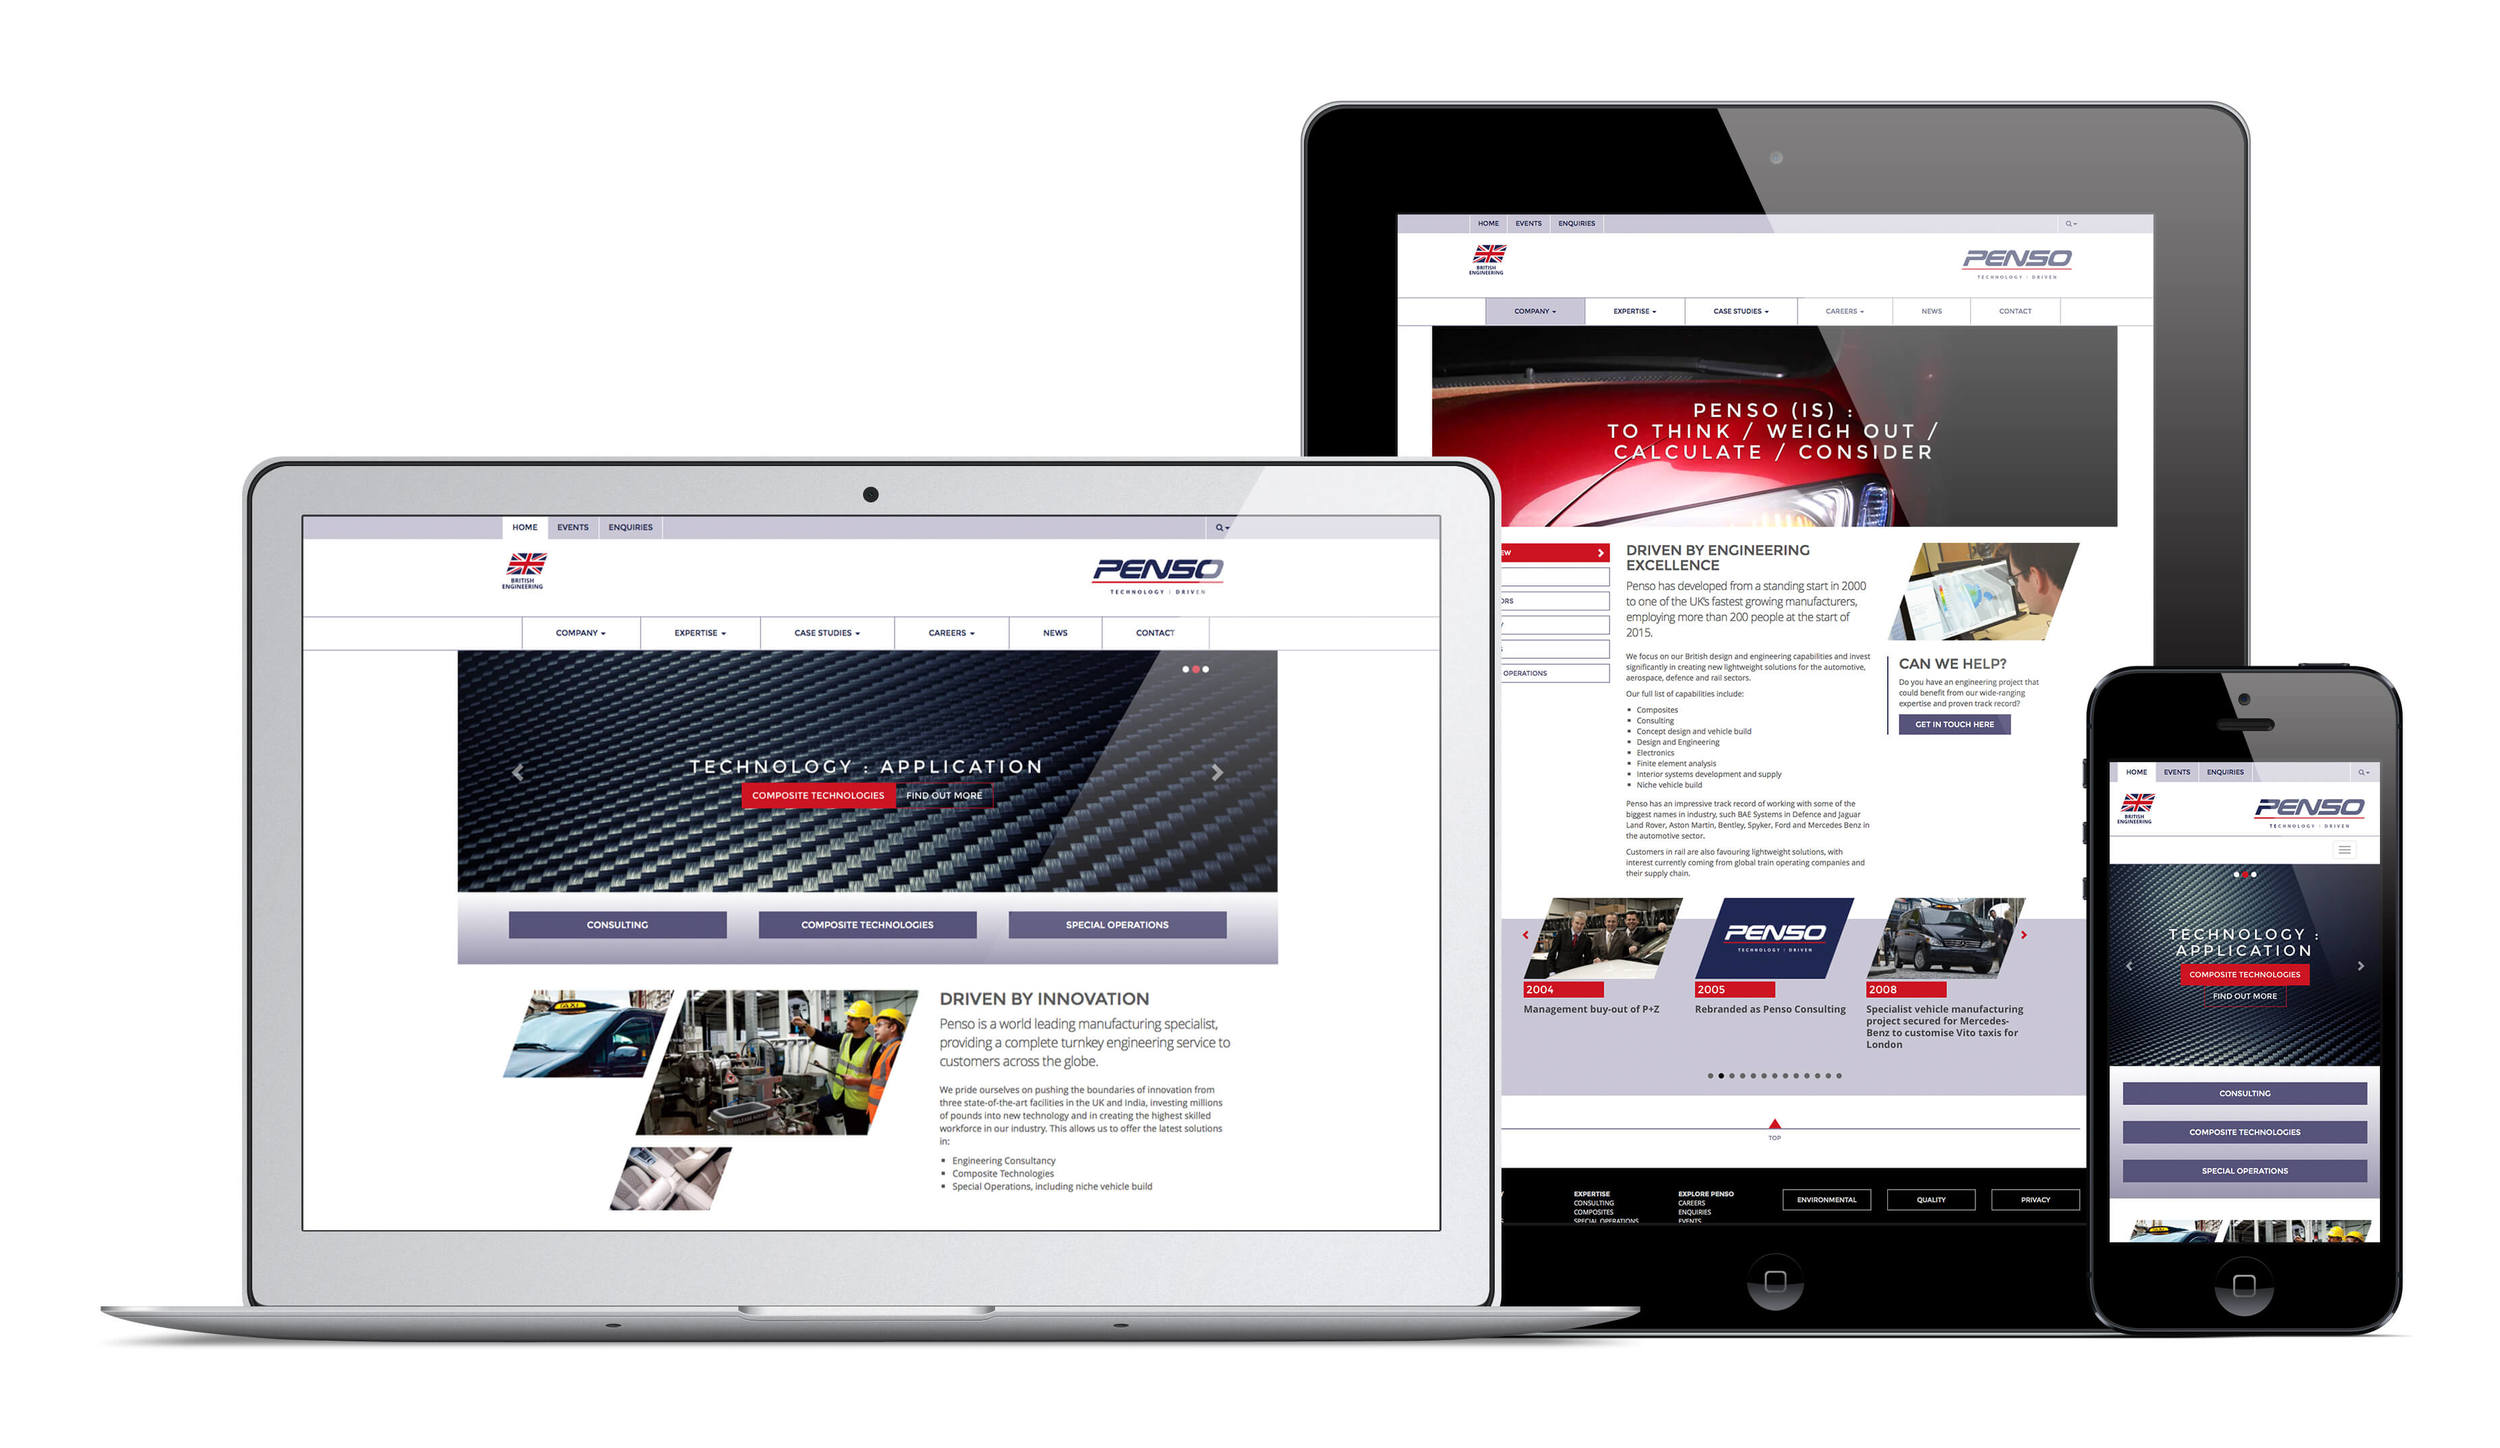 Penso new brand and website design by Create Onsight.